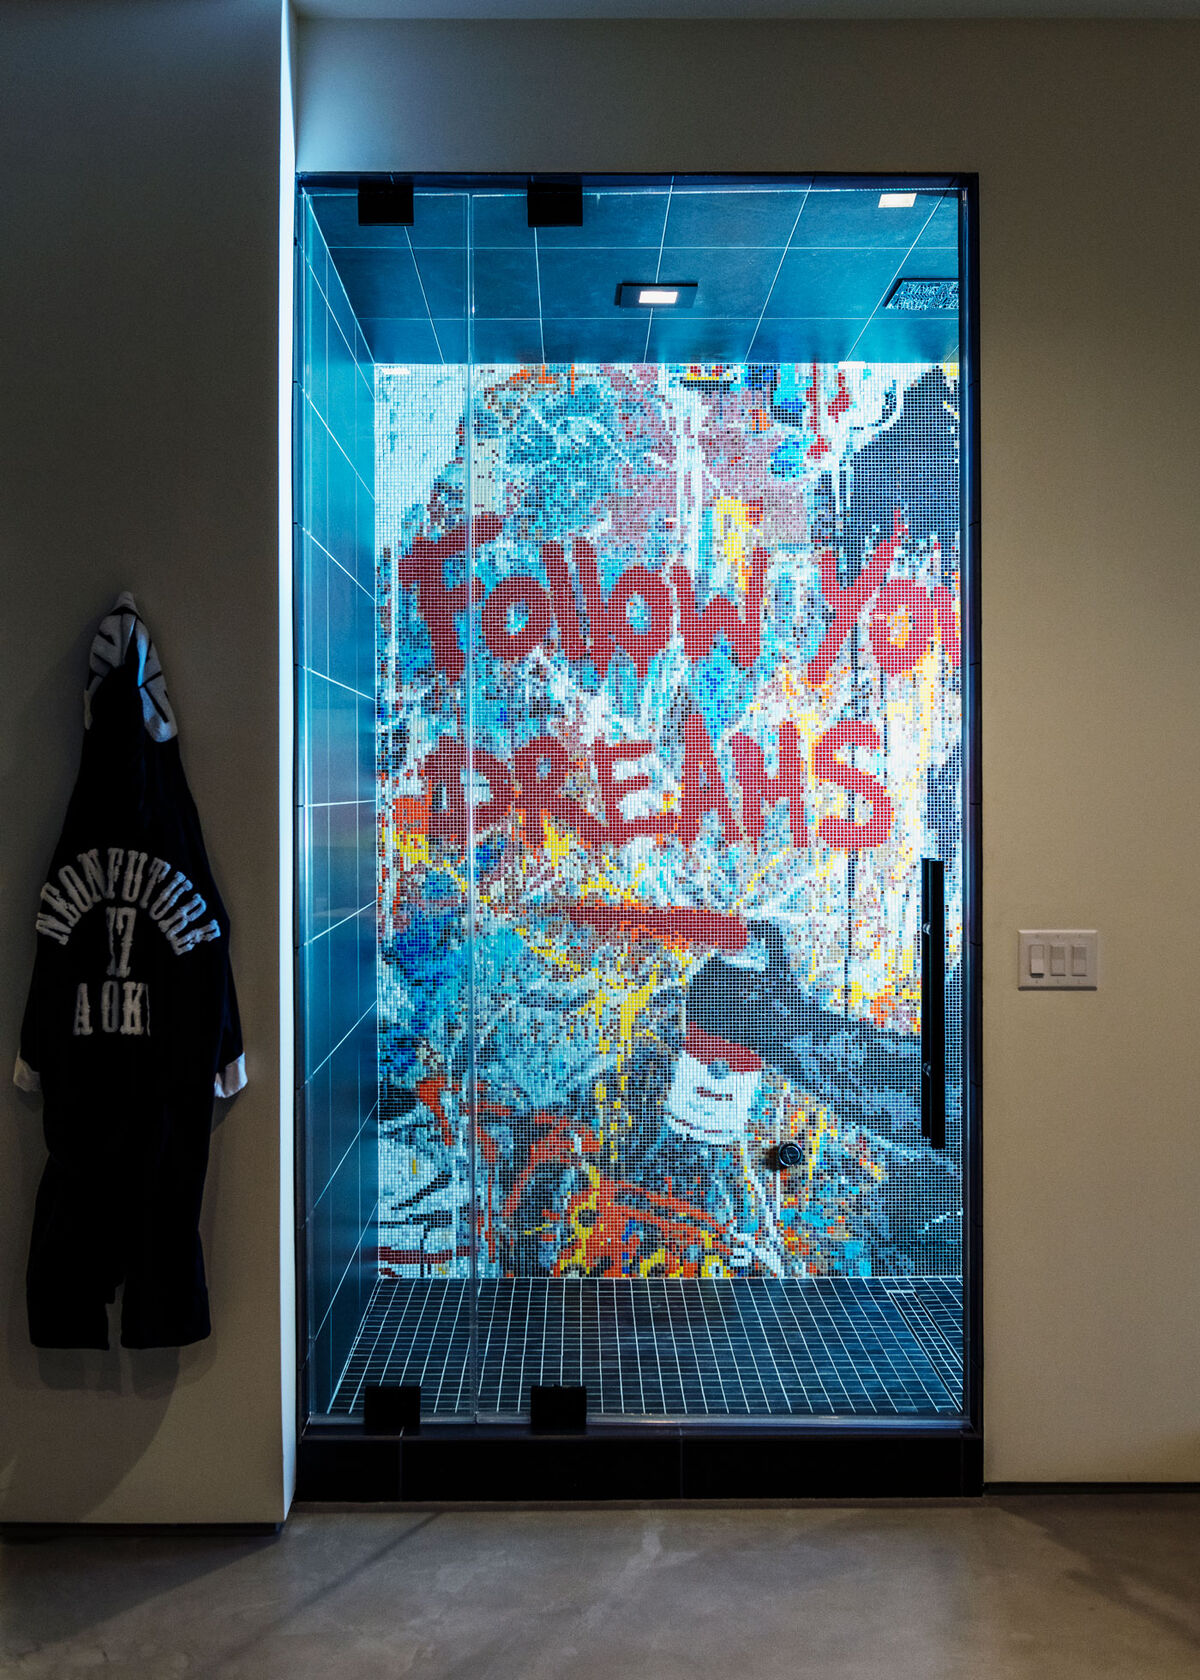 A bathrobe with the title of Aoki's Neon Future  trilogy of albums hangs next to a graffiti-covered shower. Photo by Brian Guido for Artsy.